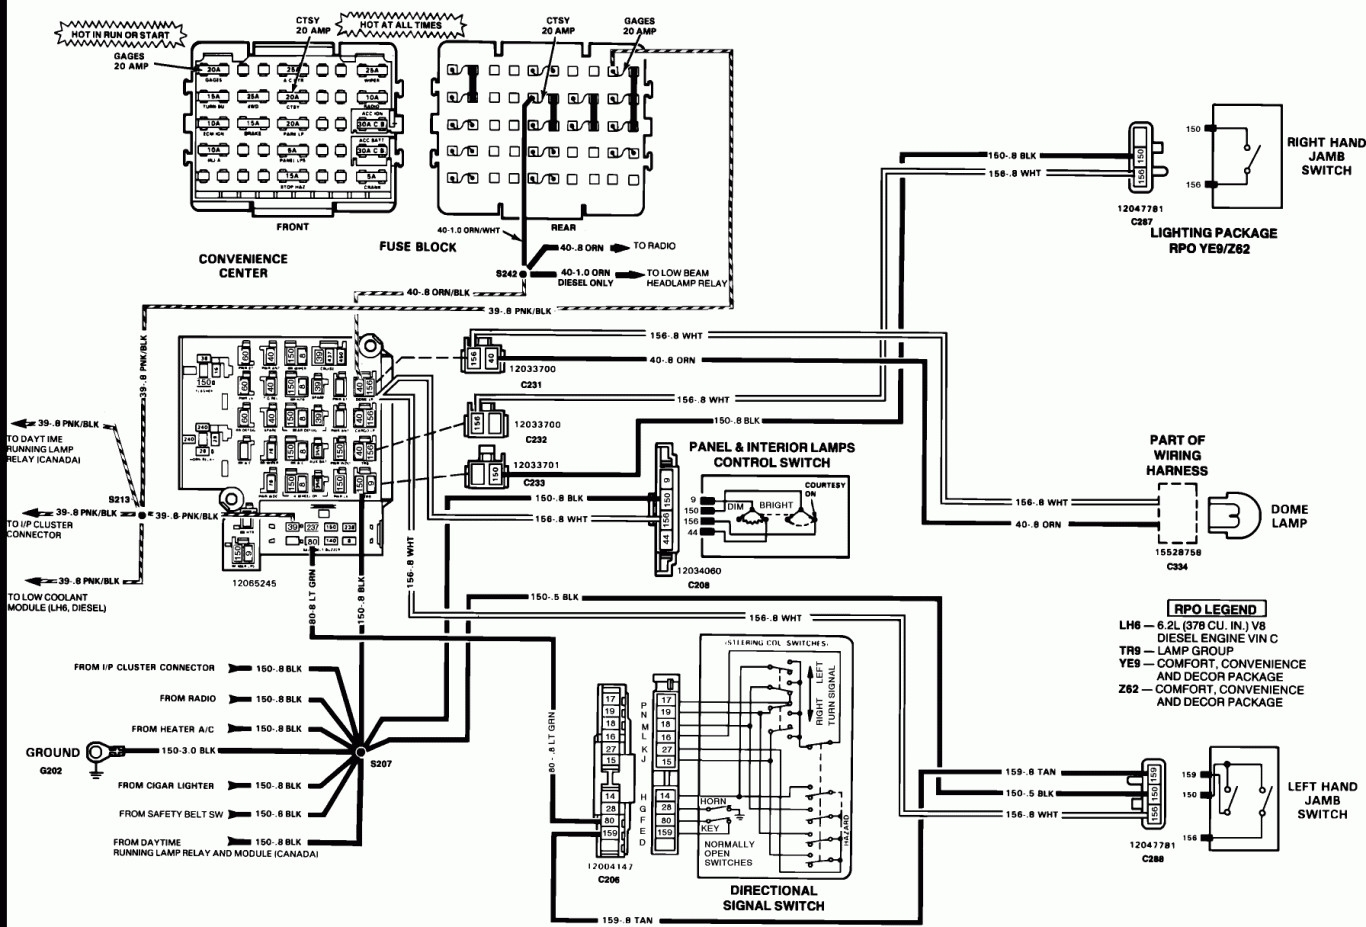 tail light wiring diagram 1995 chevy truck Collection-Tail Light Wiring Diagram 1995 Chevy Truck 018 At 7-k